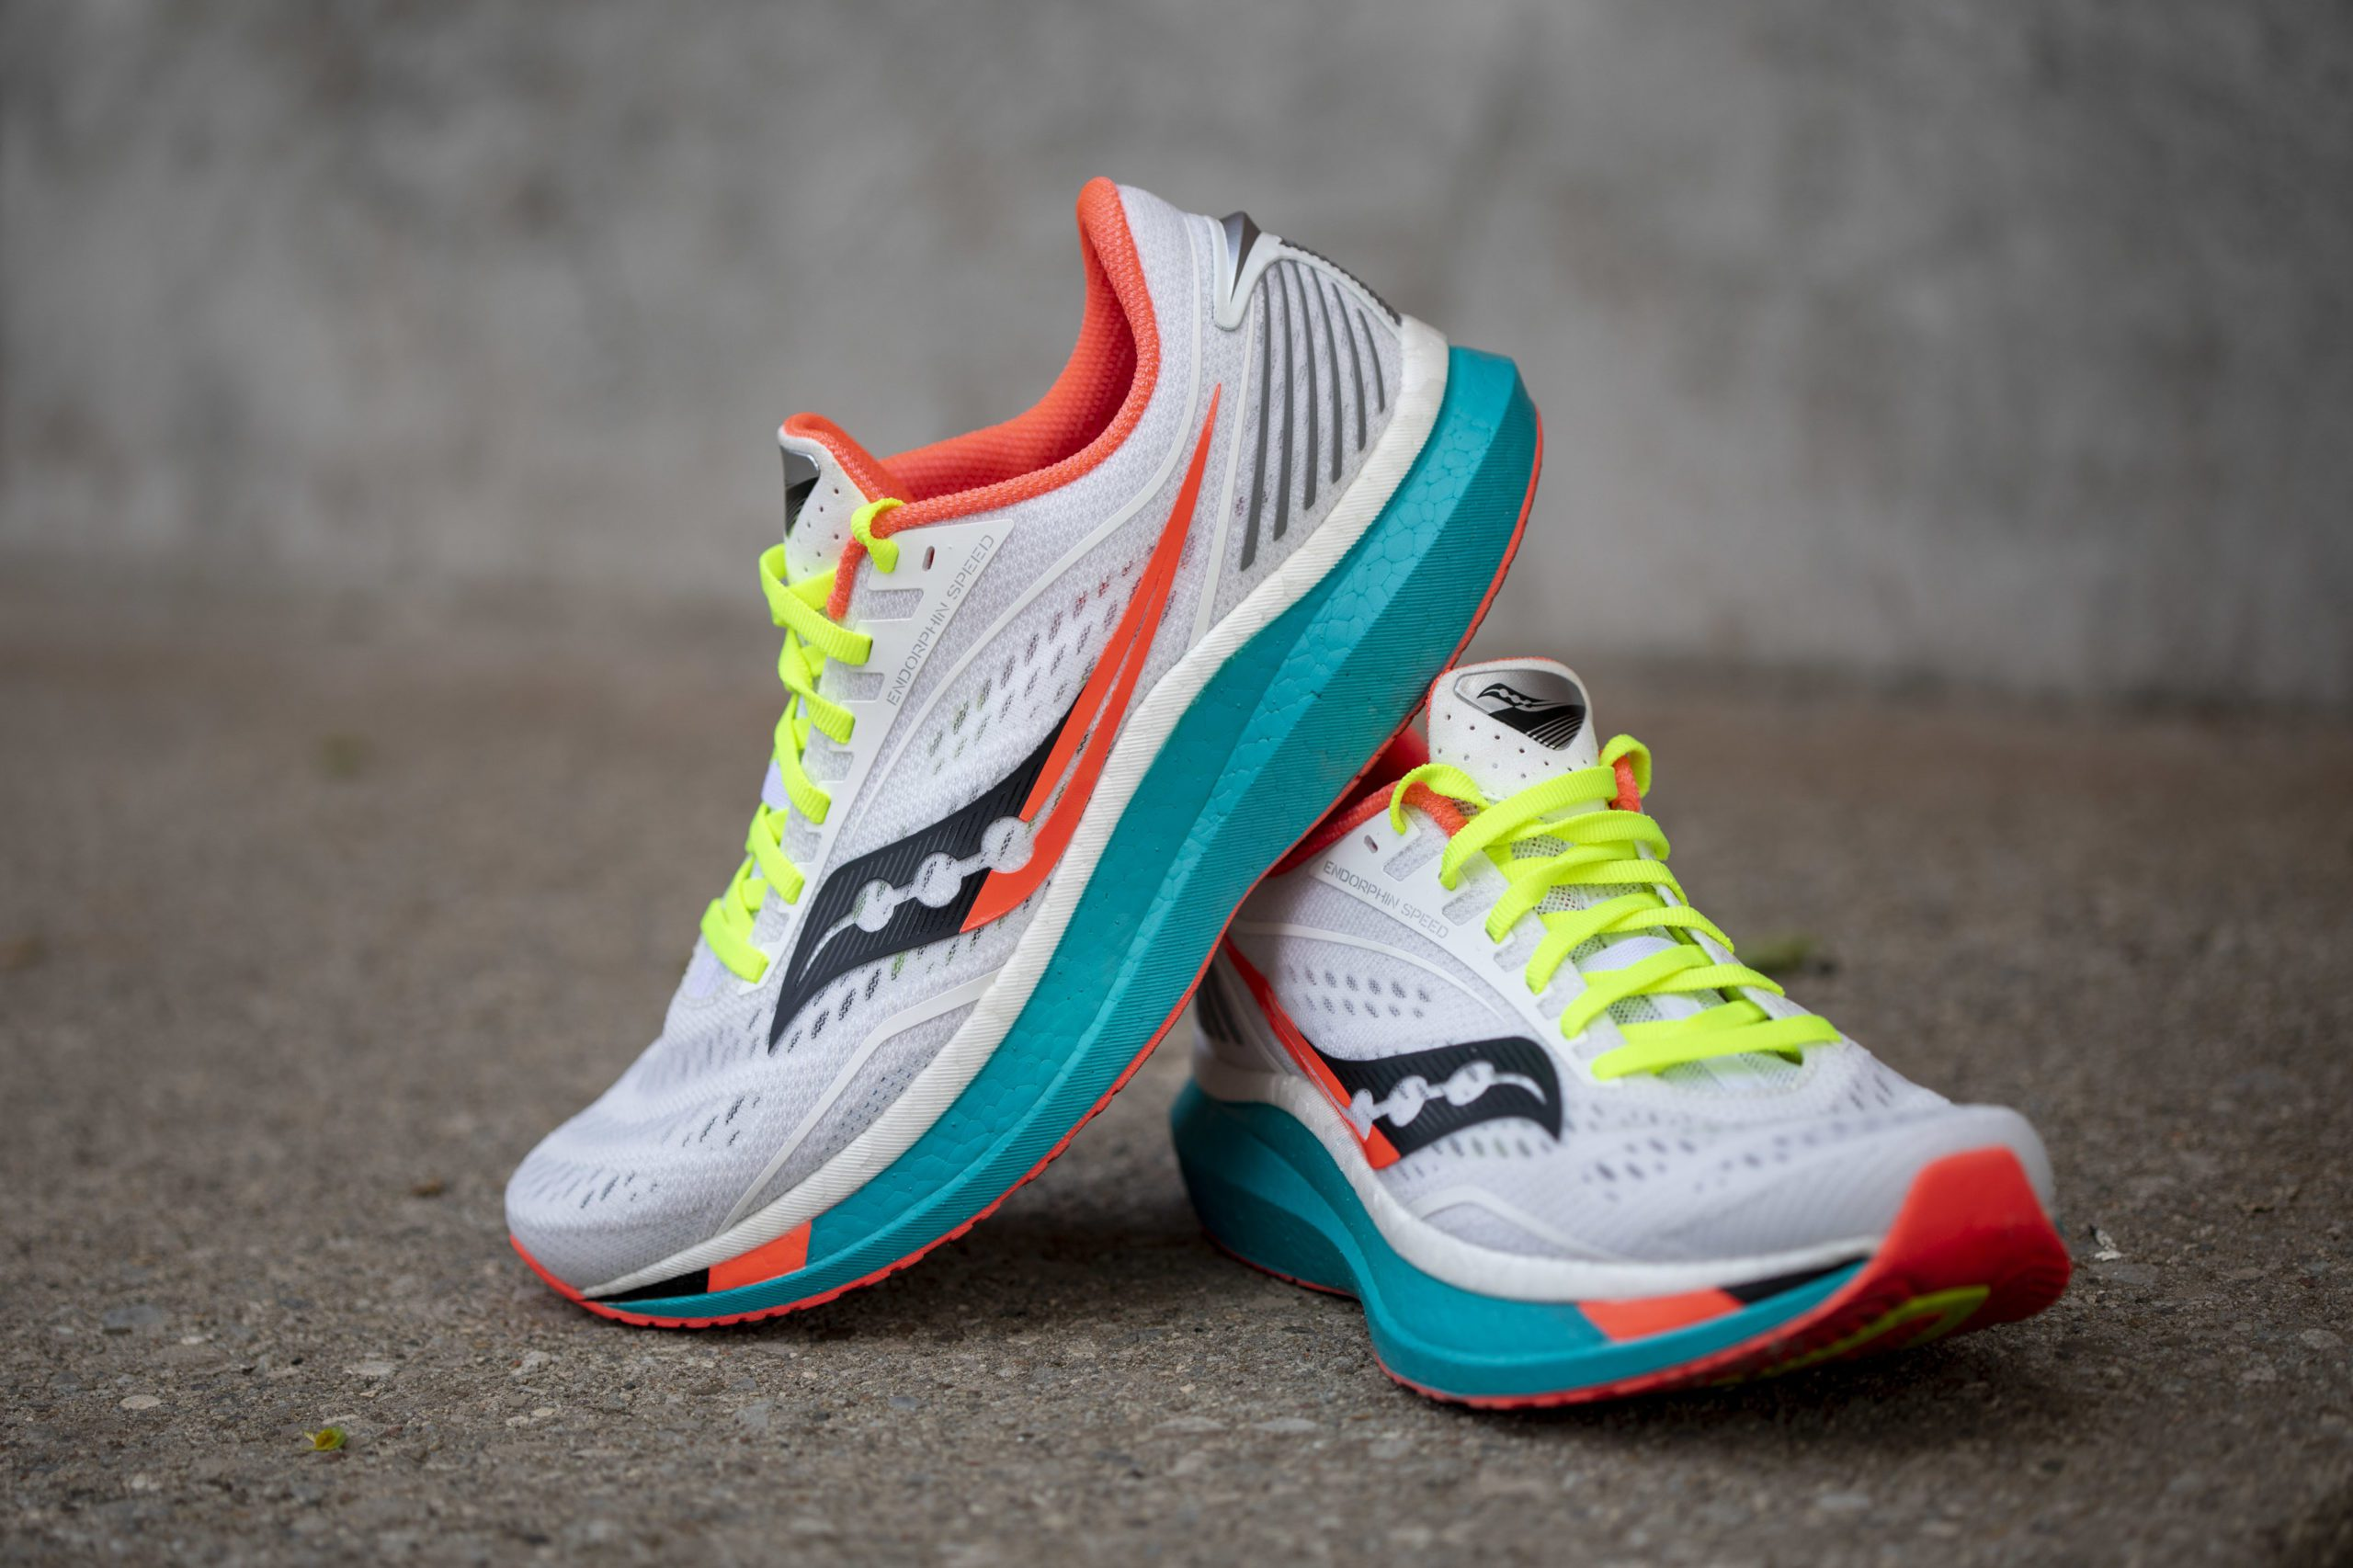 saucony stability shoes